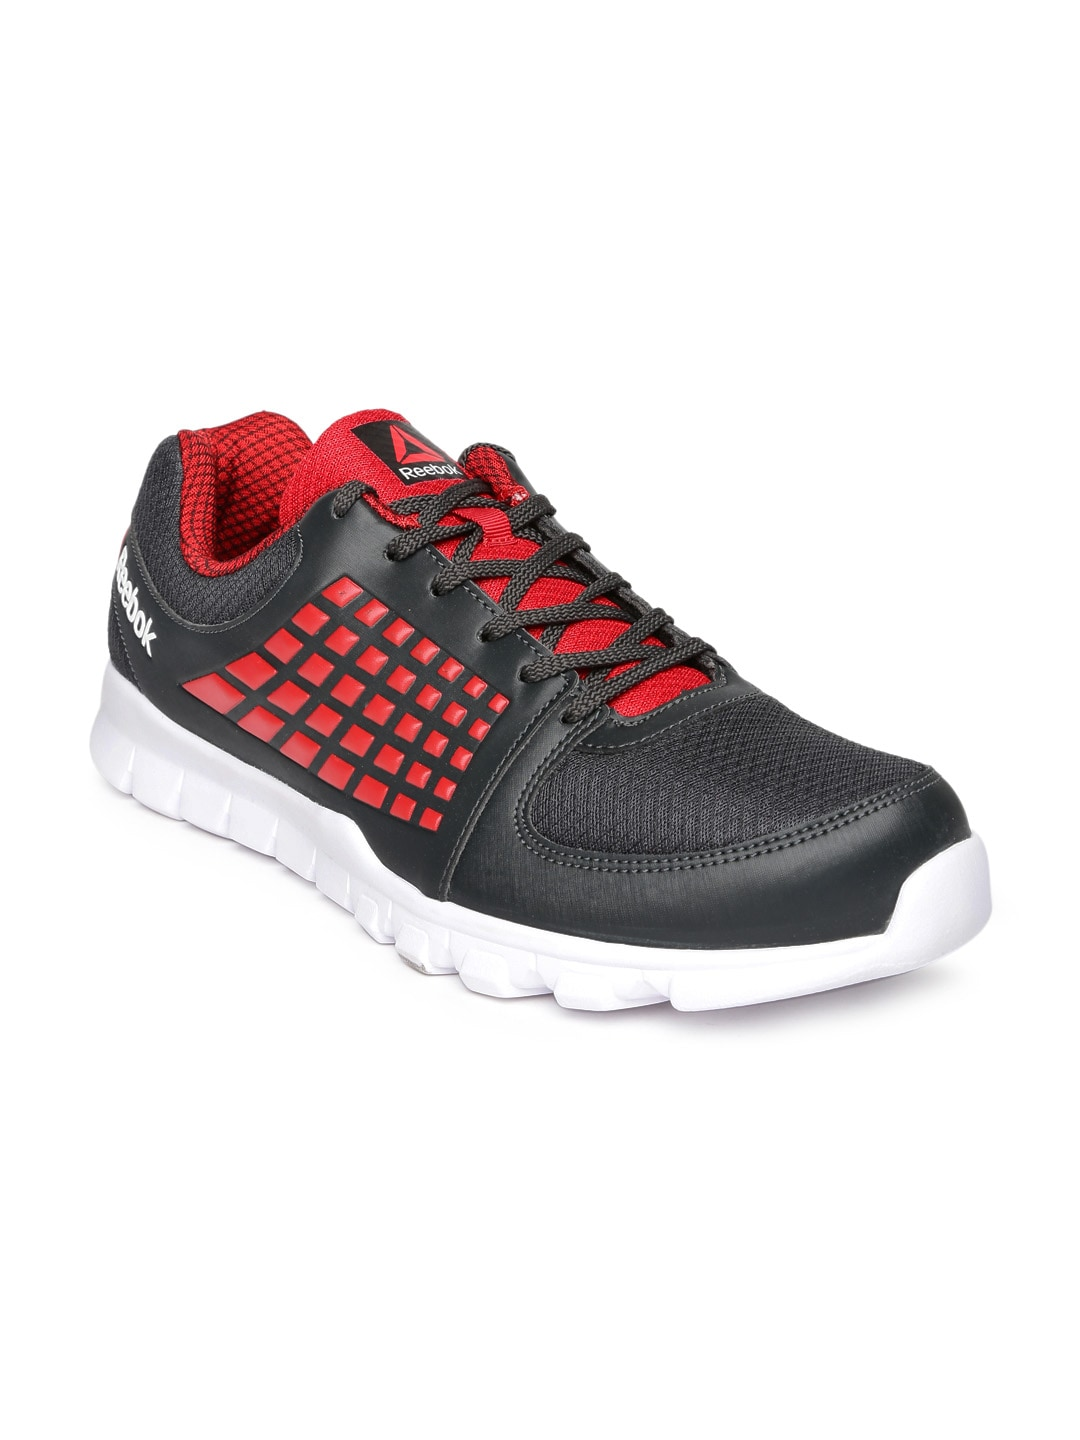 c39a463f456 Reebok Running Shoes